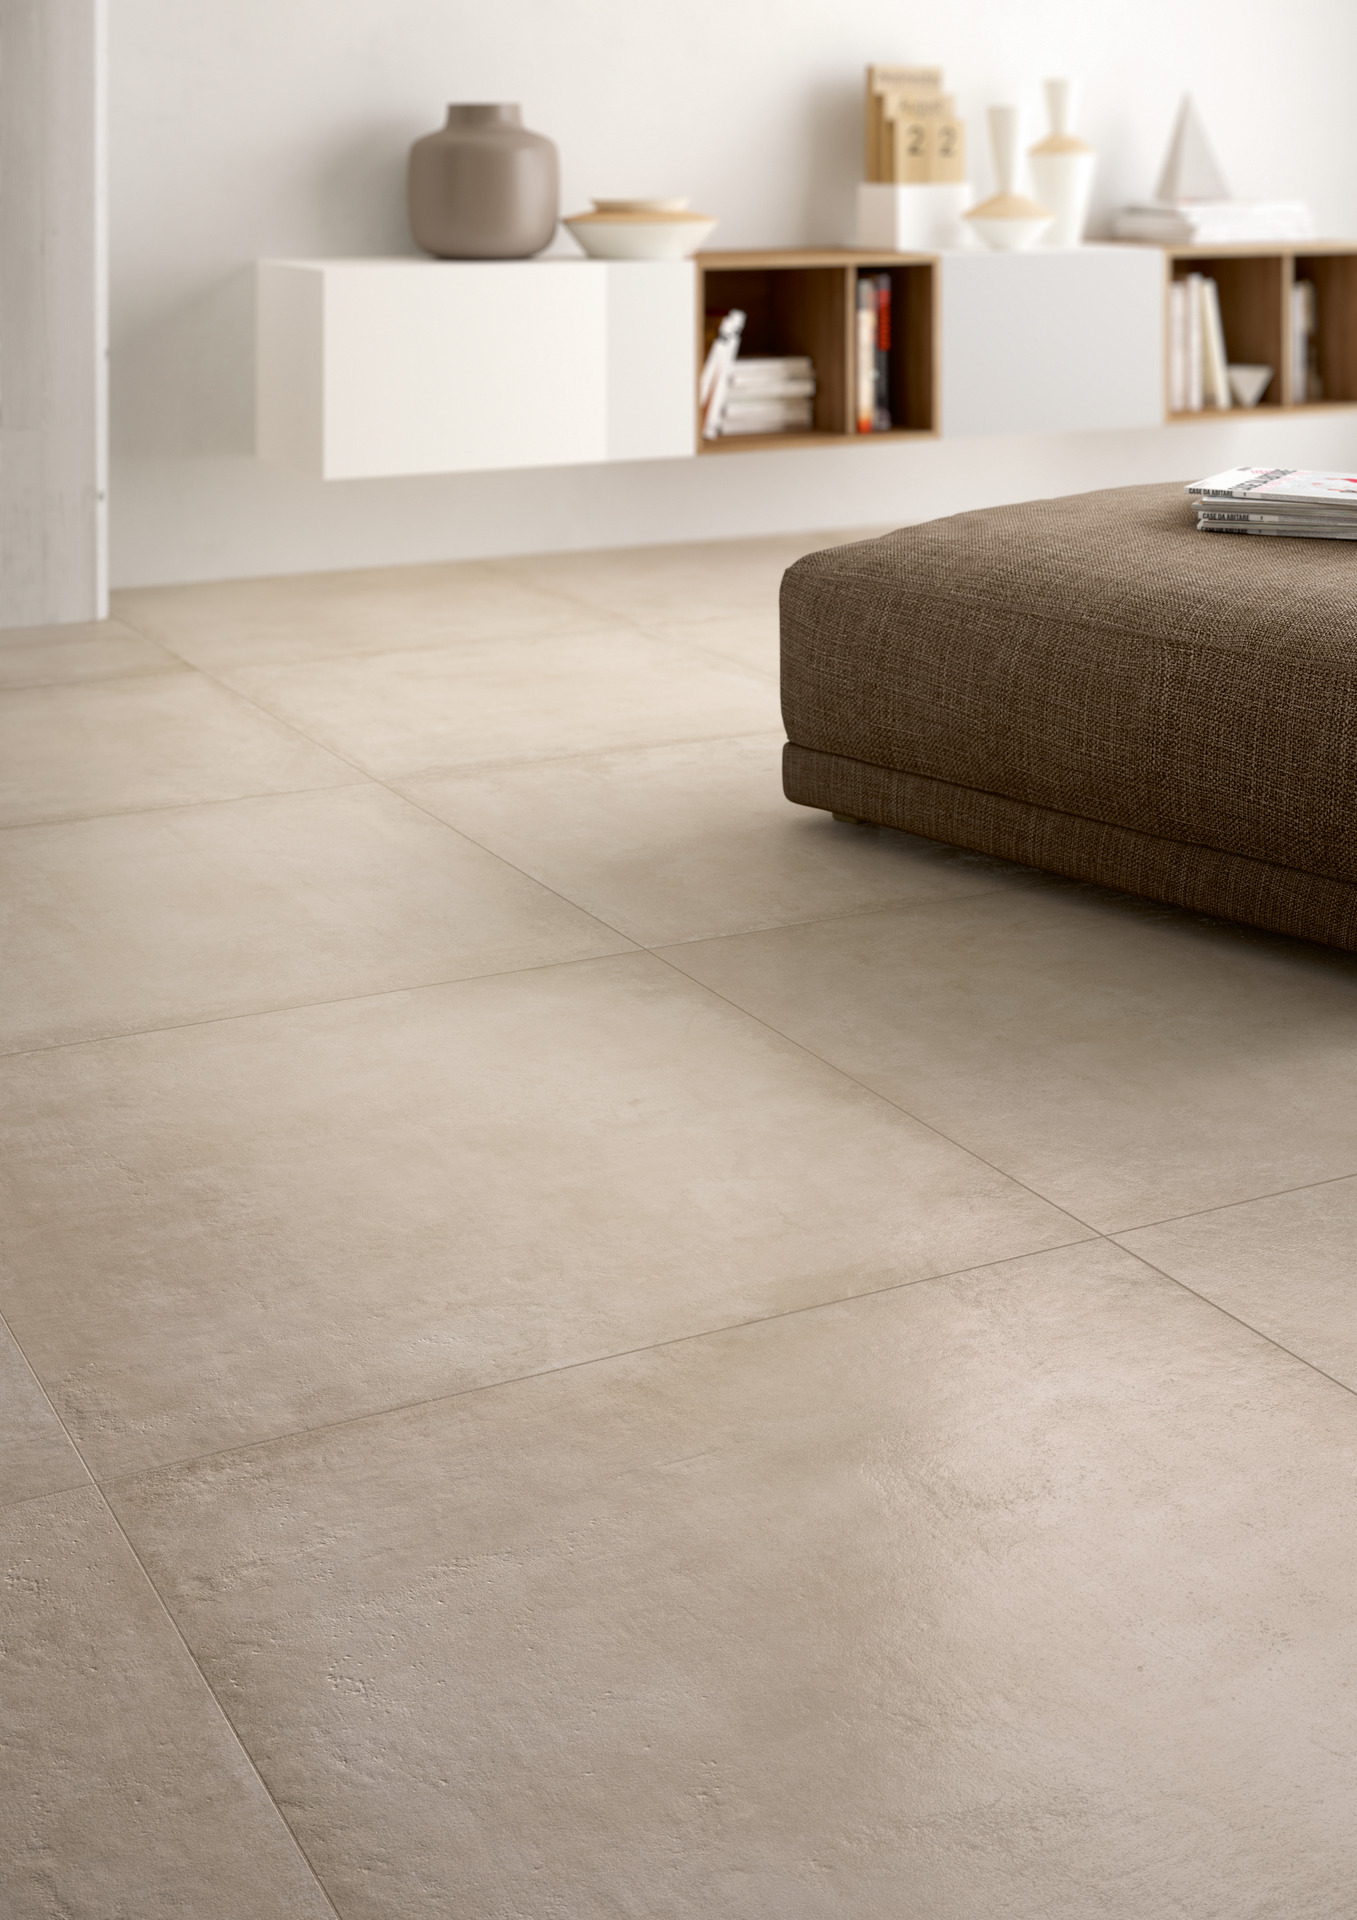 Clays terracotta effect porcelain stoneware marazzi for Marazzi tile